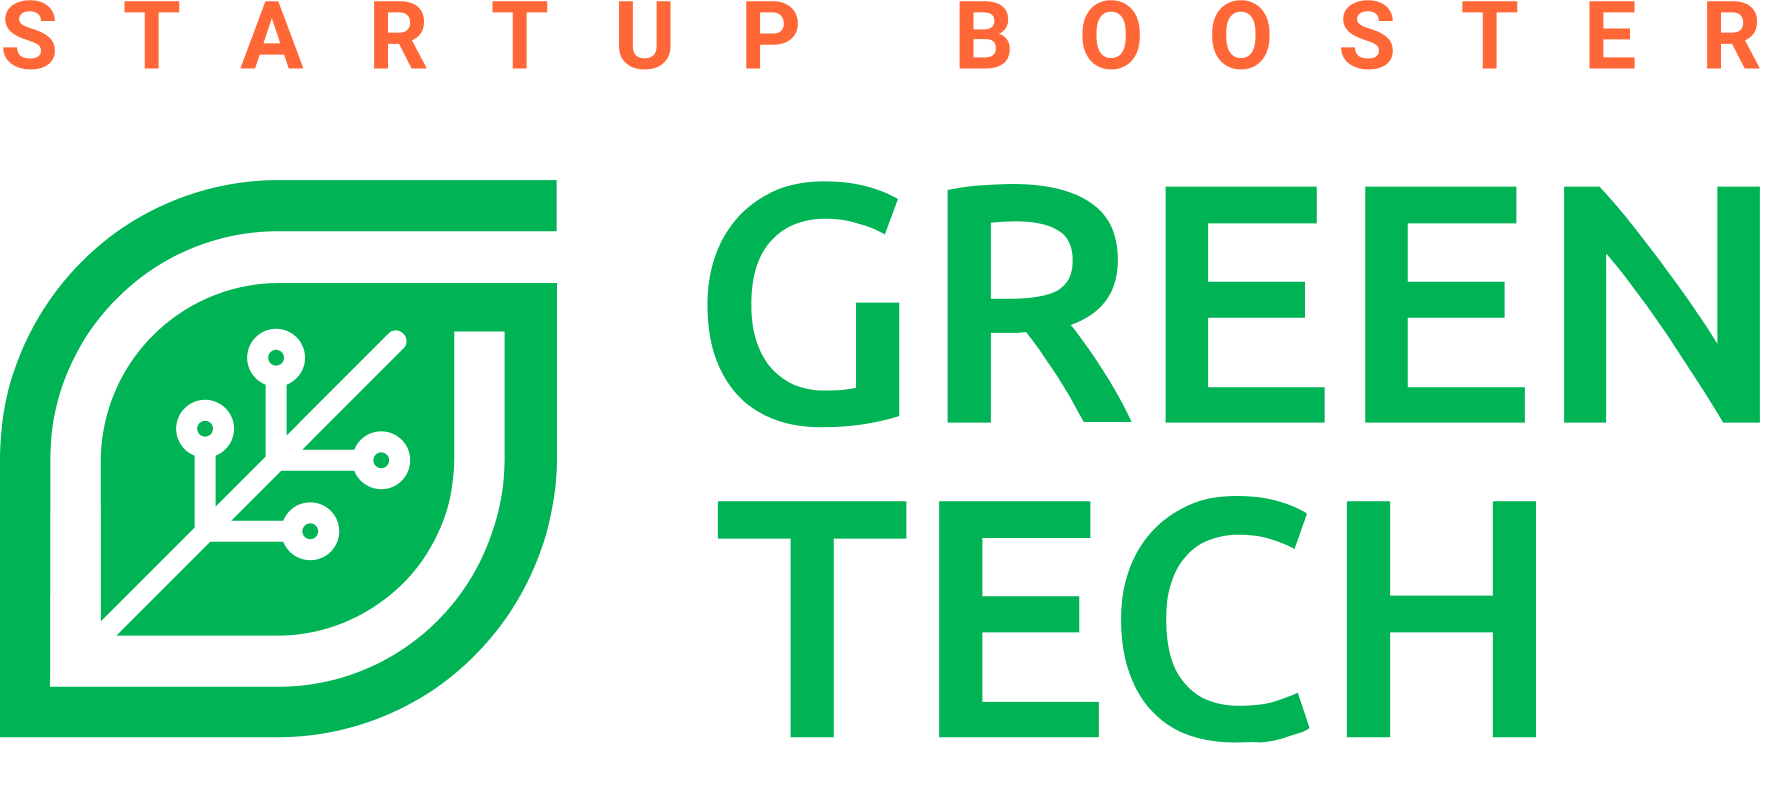 «GreenTech» is the first accelerator of technology startups in the field of ecology in Russia